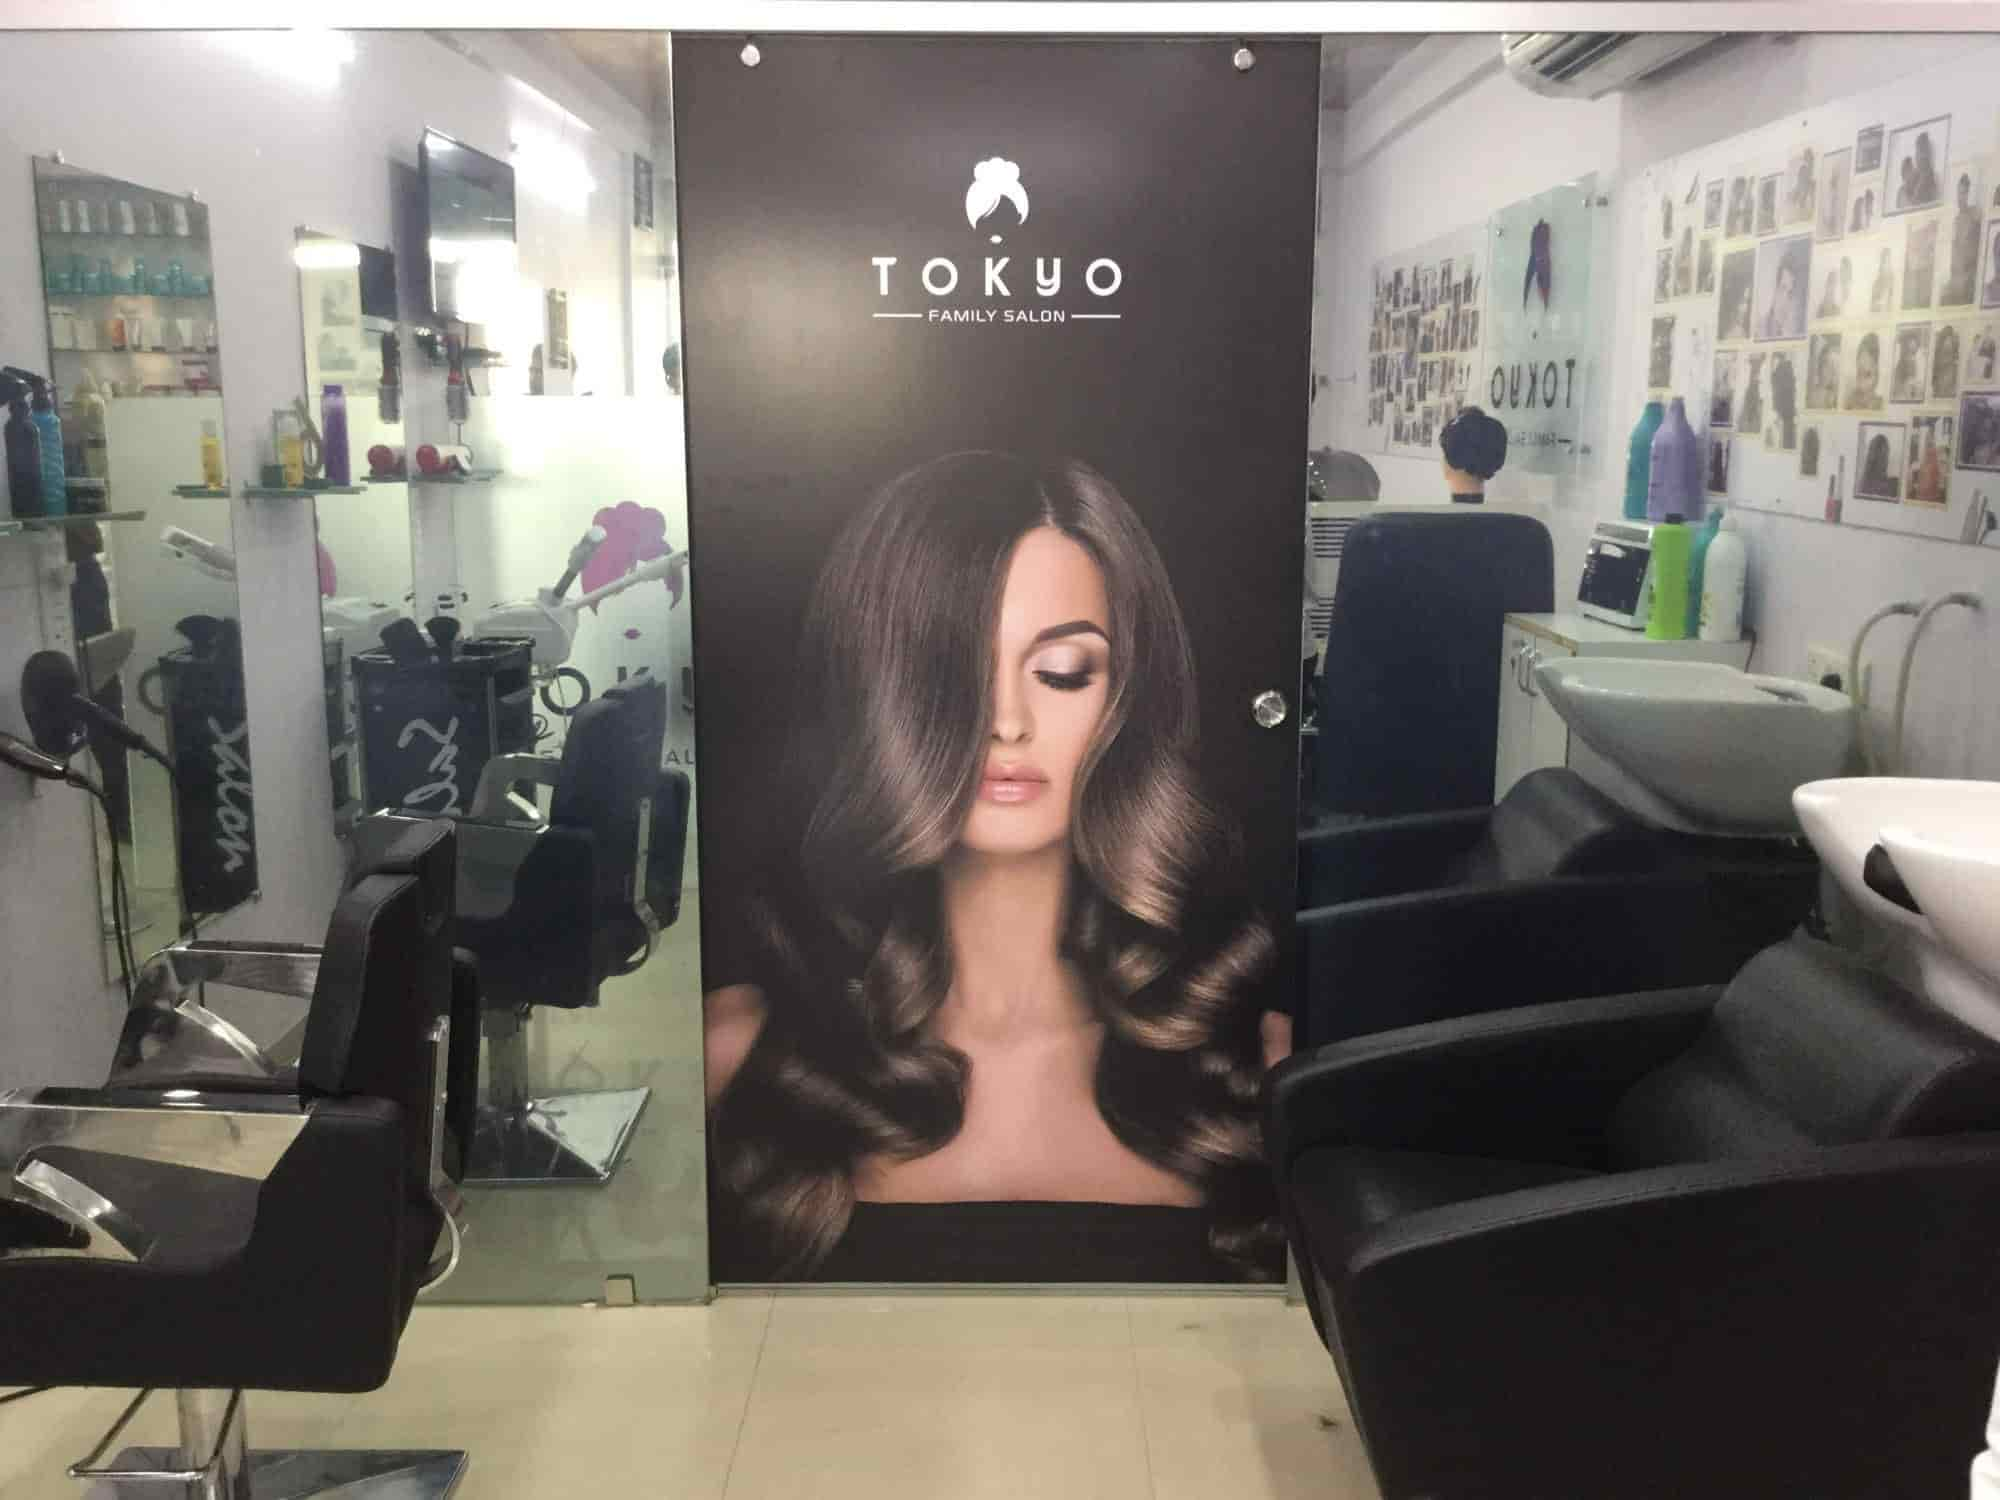 Tokyo Salon Tokyo Family Salon New C G Road Chandkheda Beauty Spas In